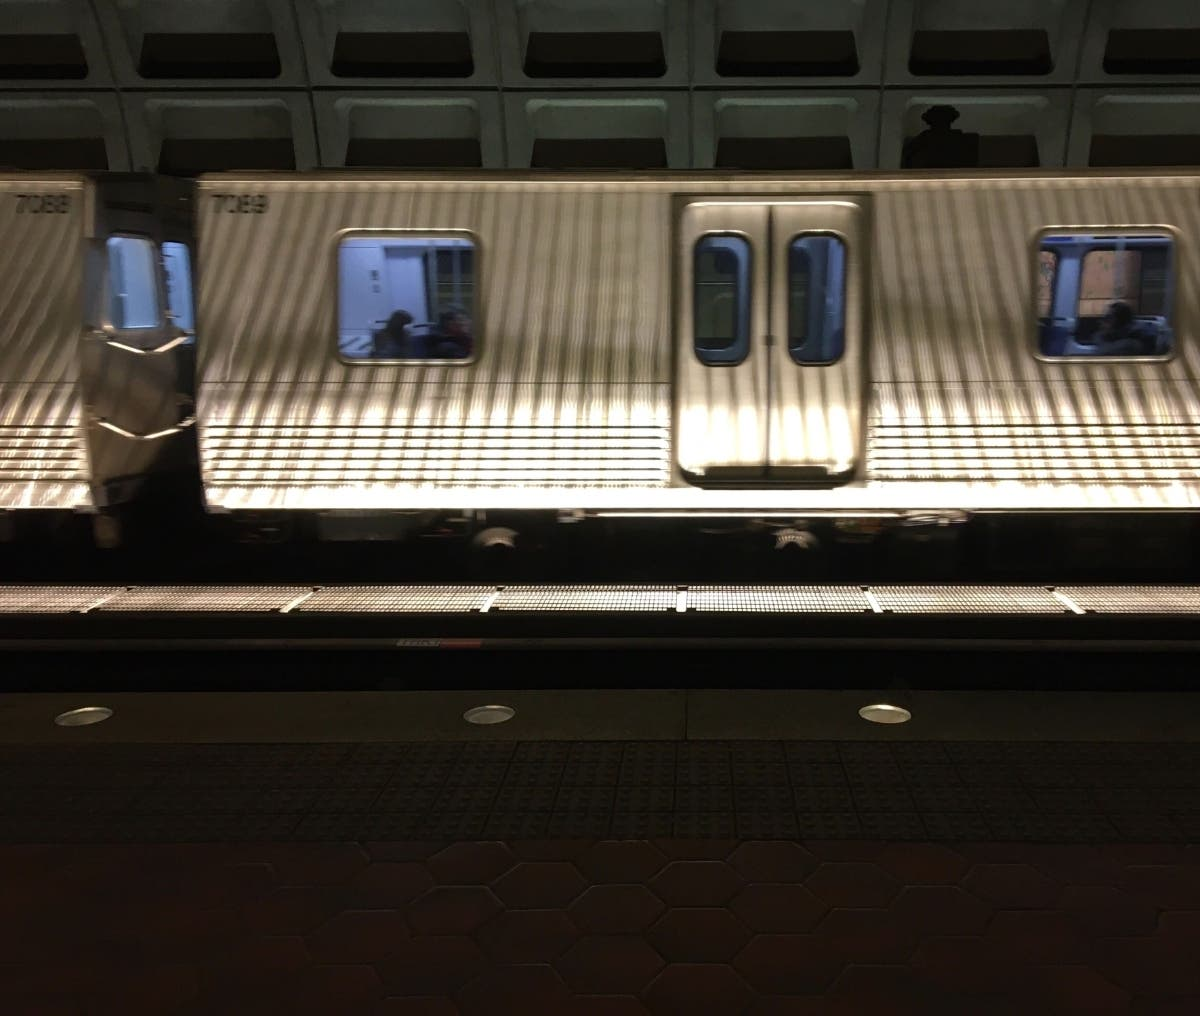 Longer Name Recommended For McLean Metro Station